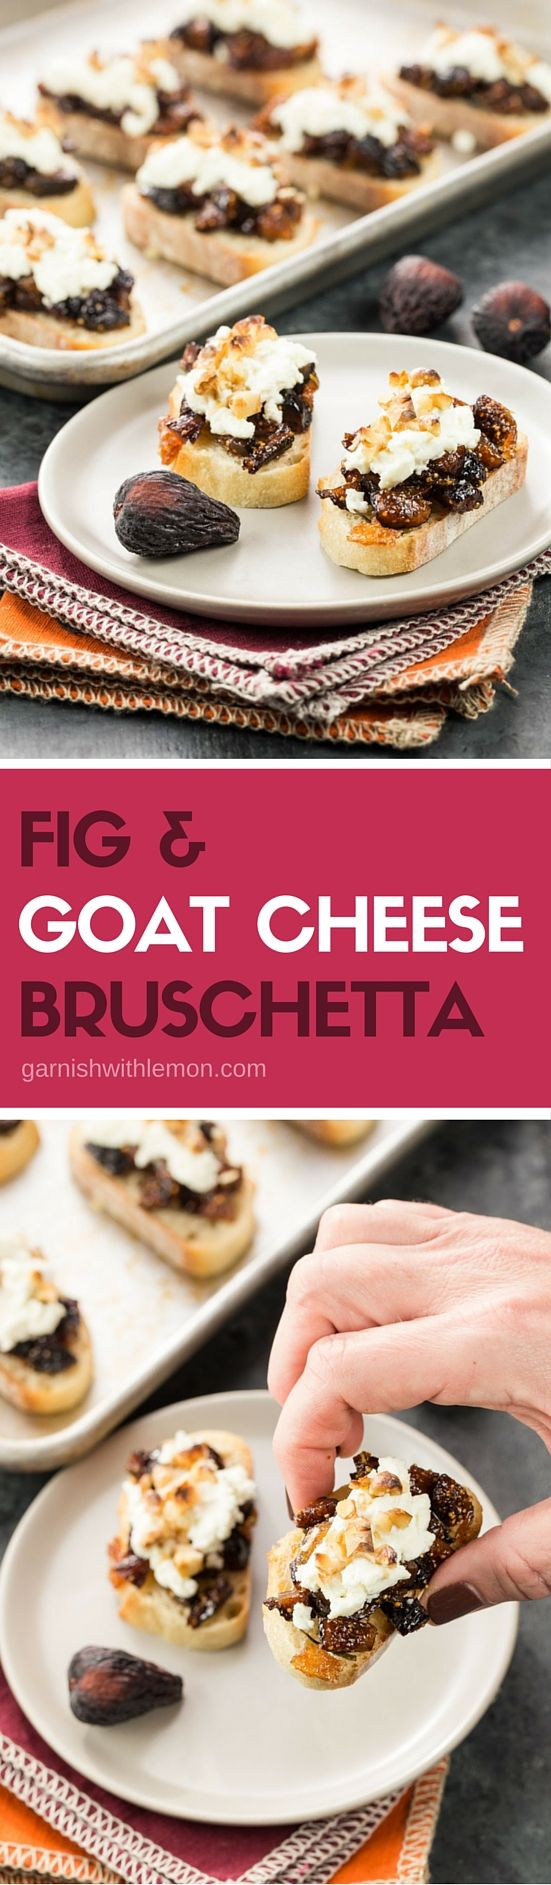 Fig & Goat Cheese Bruschetta